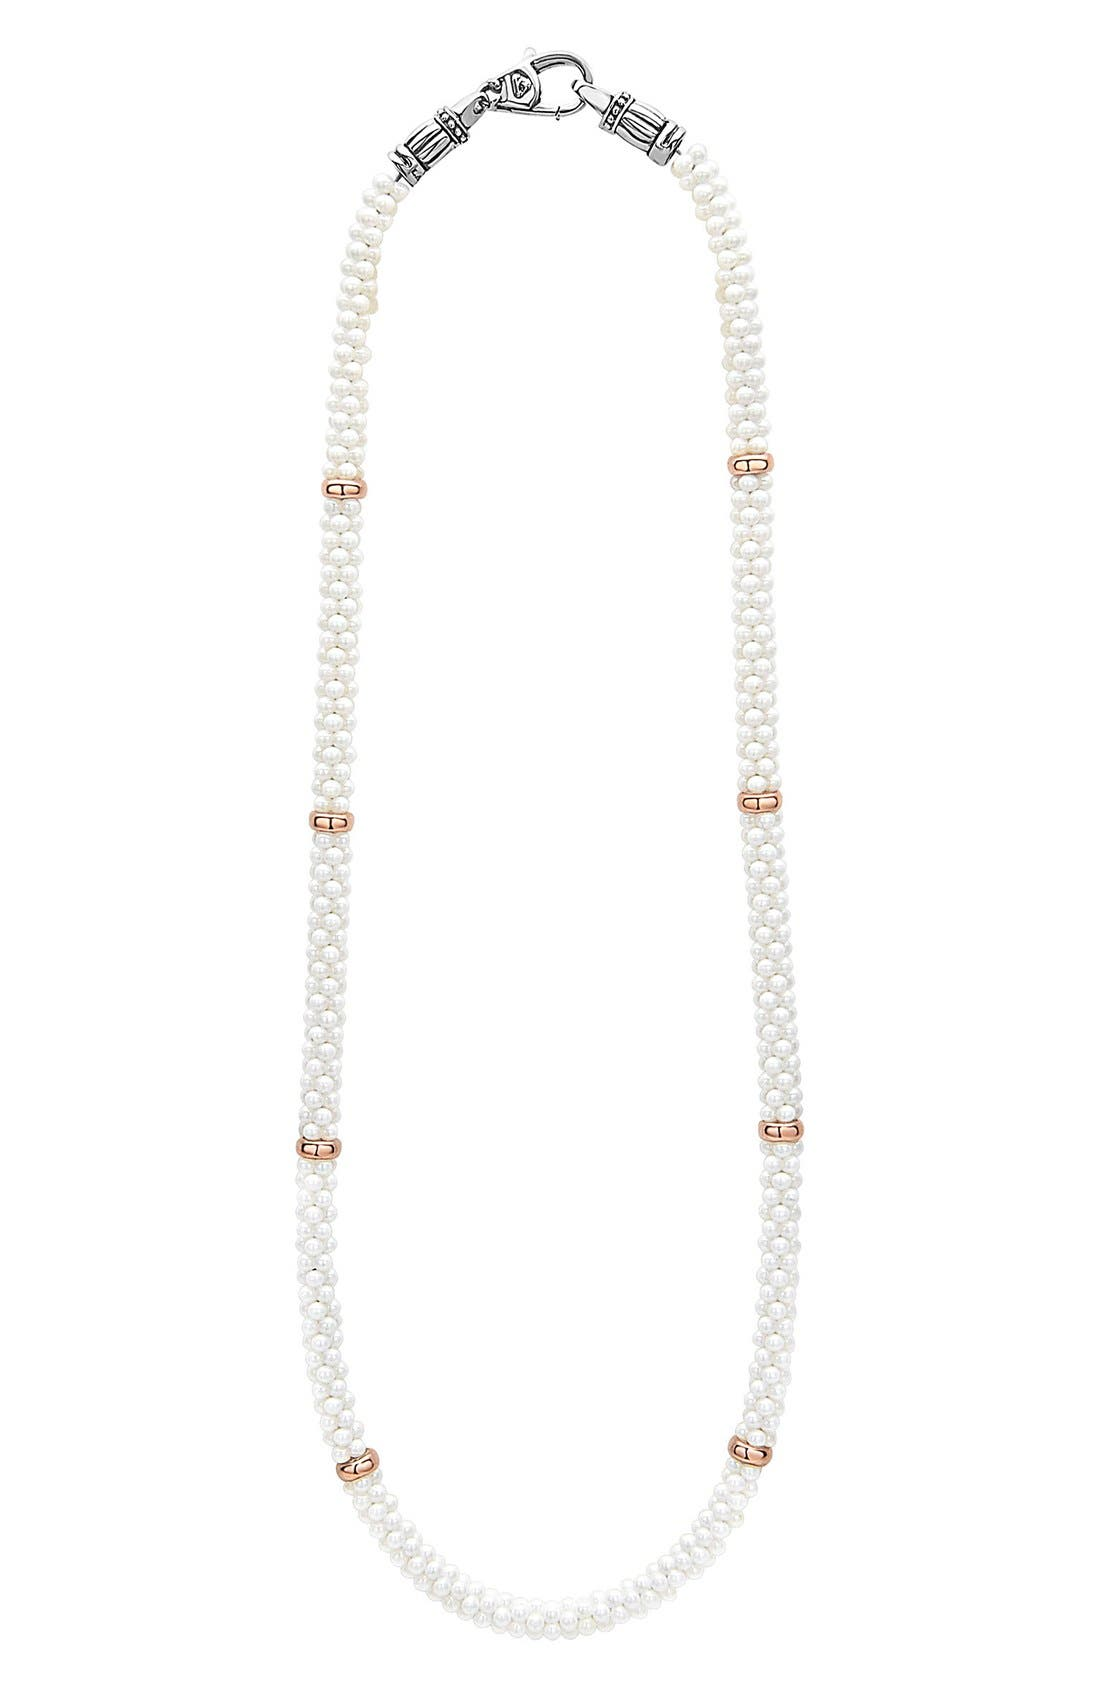 'White Caviar' 5mm Beaded Station Necklace,                             Main thumbnail 1, color,                             White Caviar/ Rose Gold